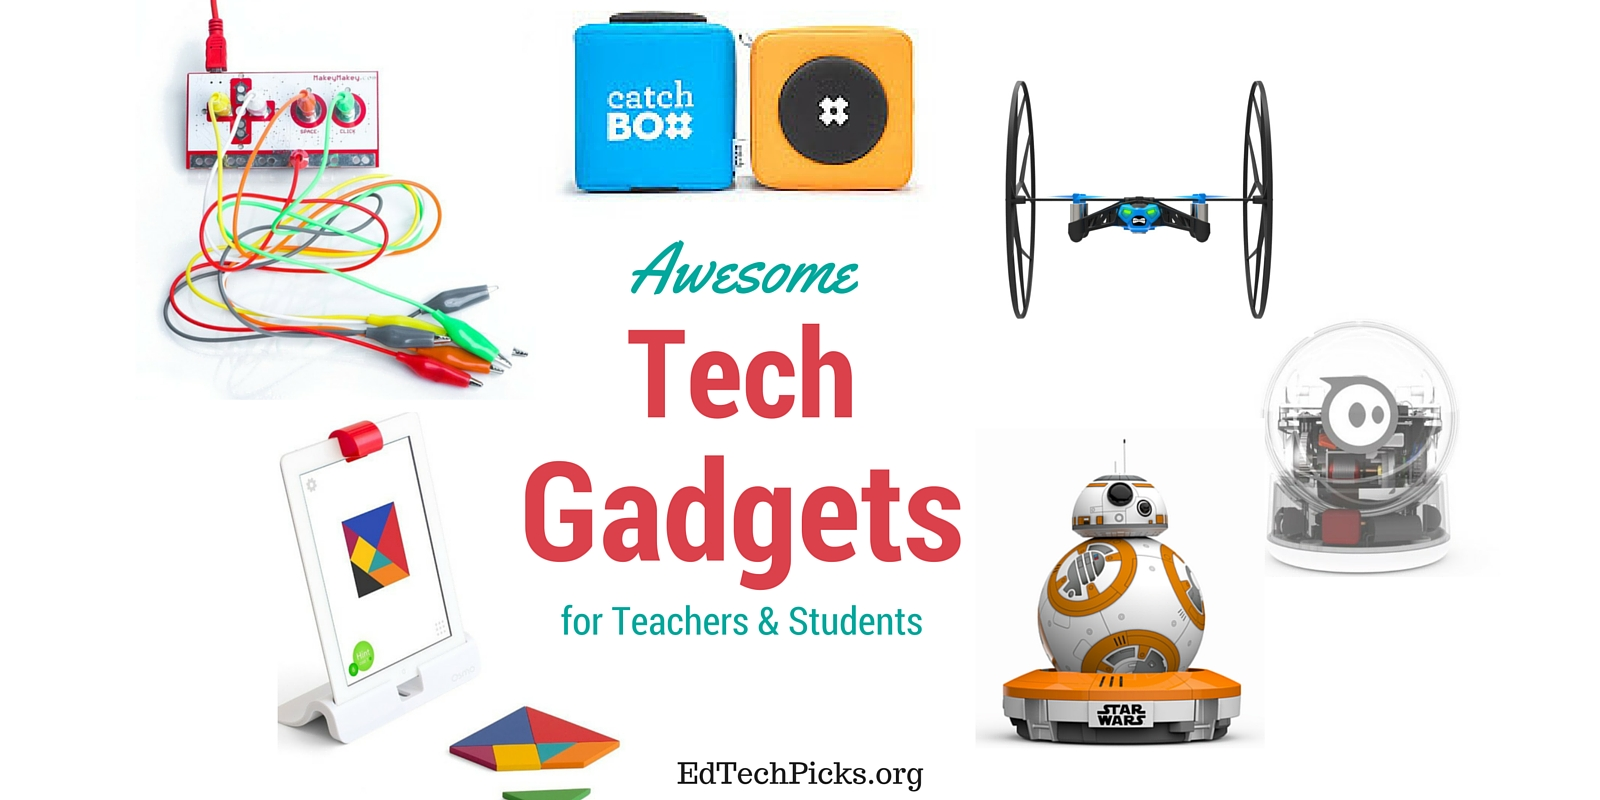 5 Awesome Tech Gadgets for Teachers and Students.